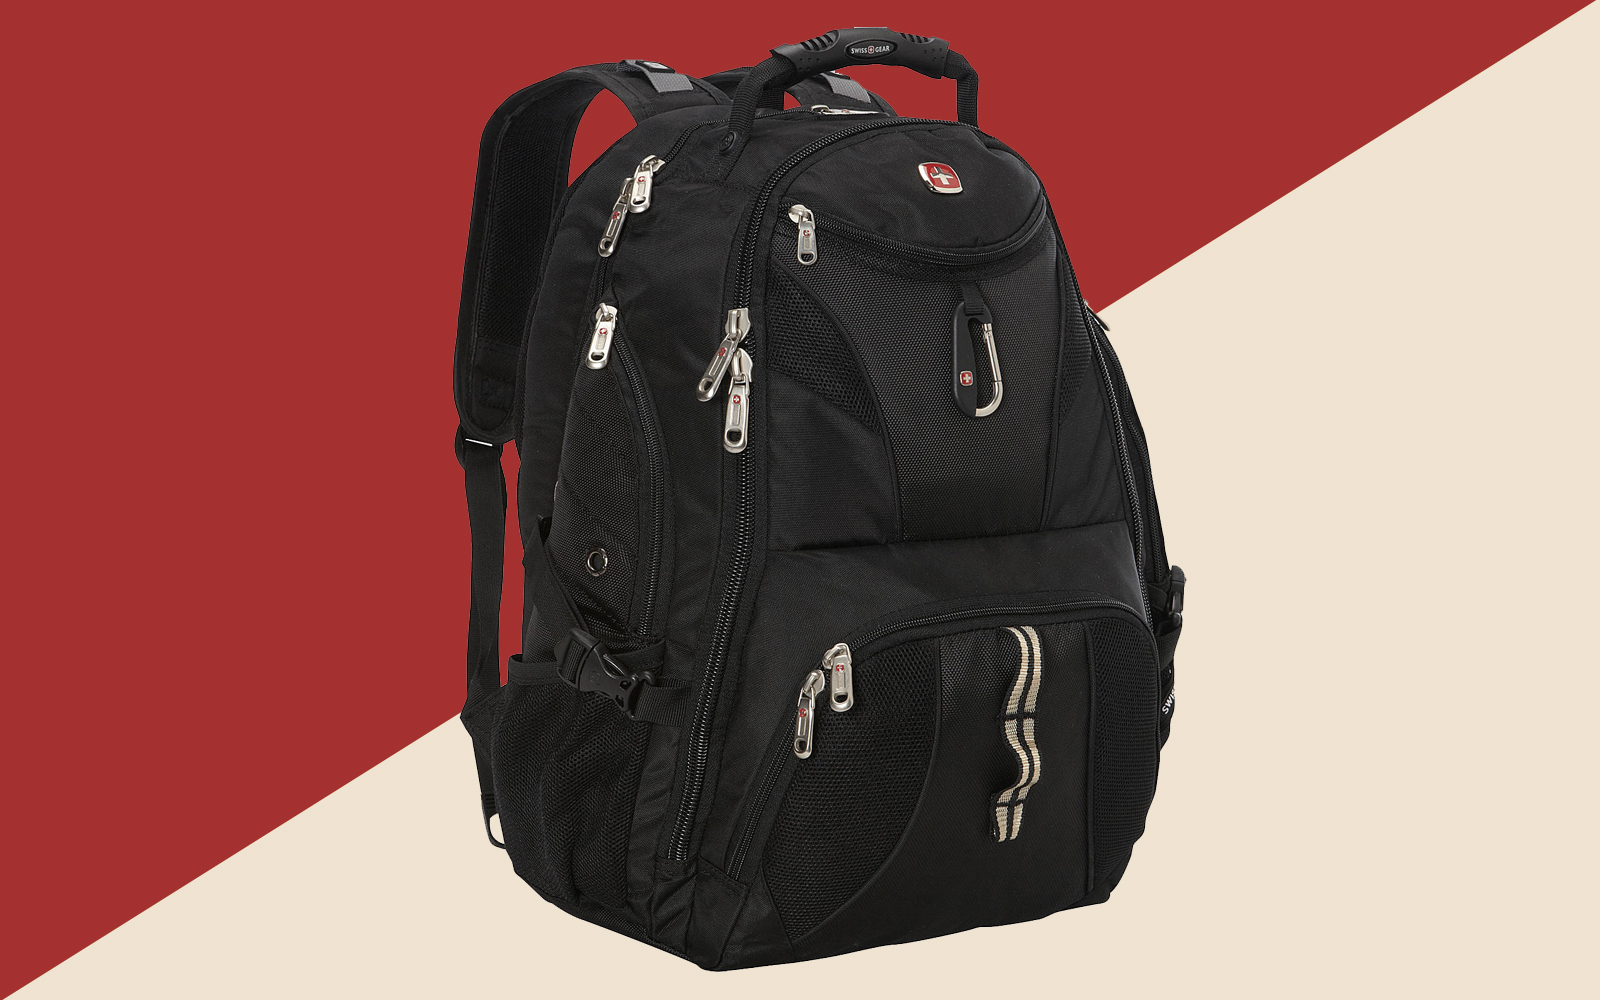 Best Travel Bag Deals: Top Rated Laptop Backpacks on Sale